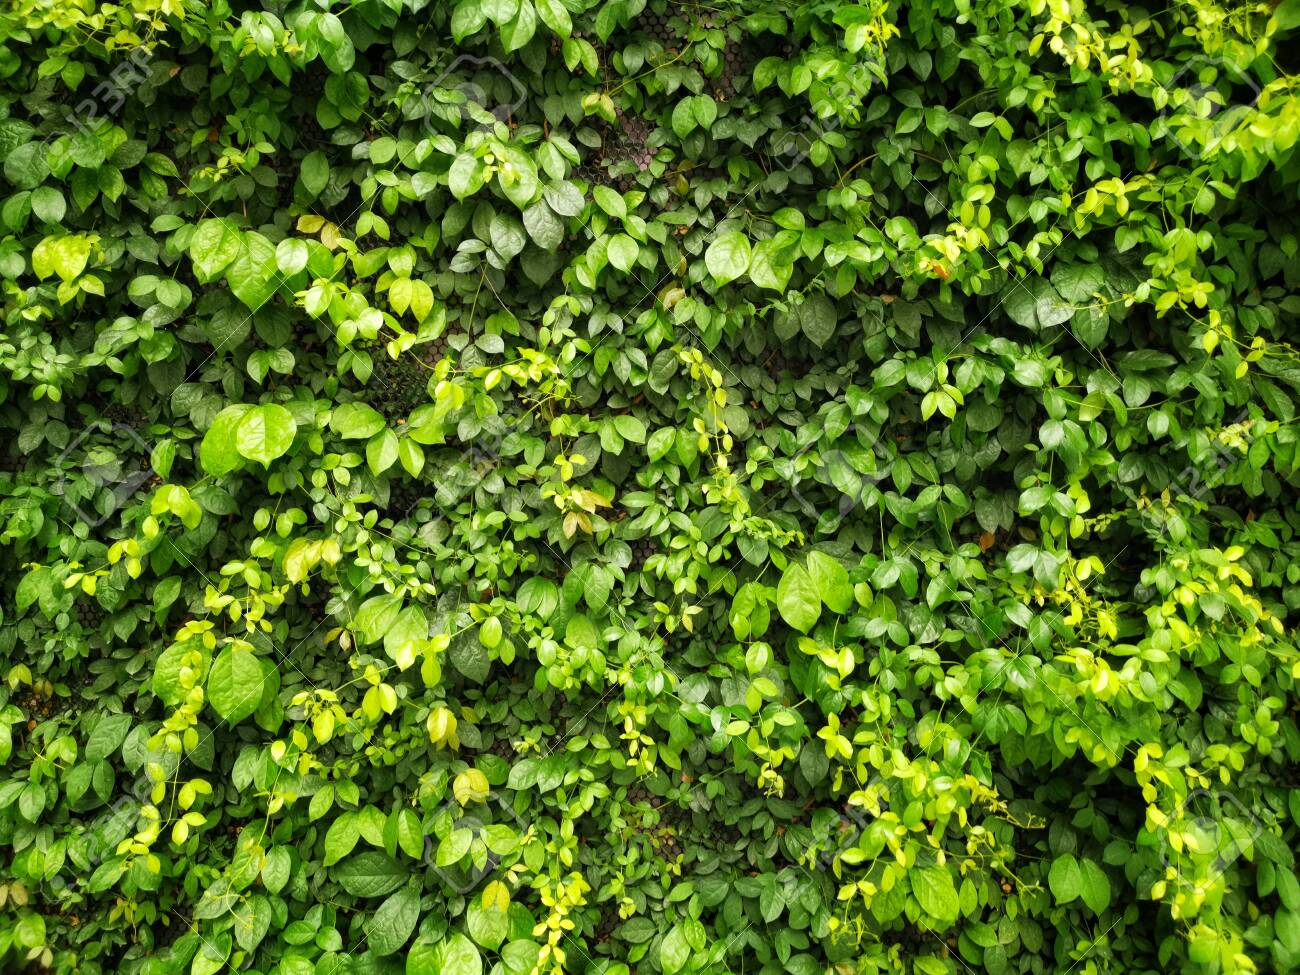 Green creeper or green leaves on the wall texture background - 120444381